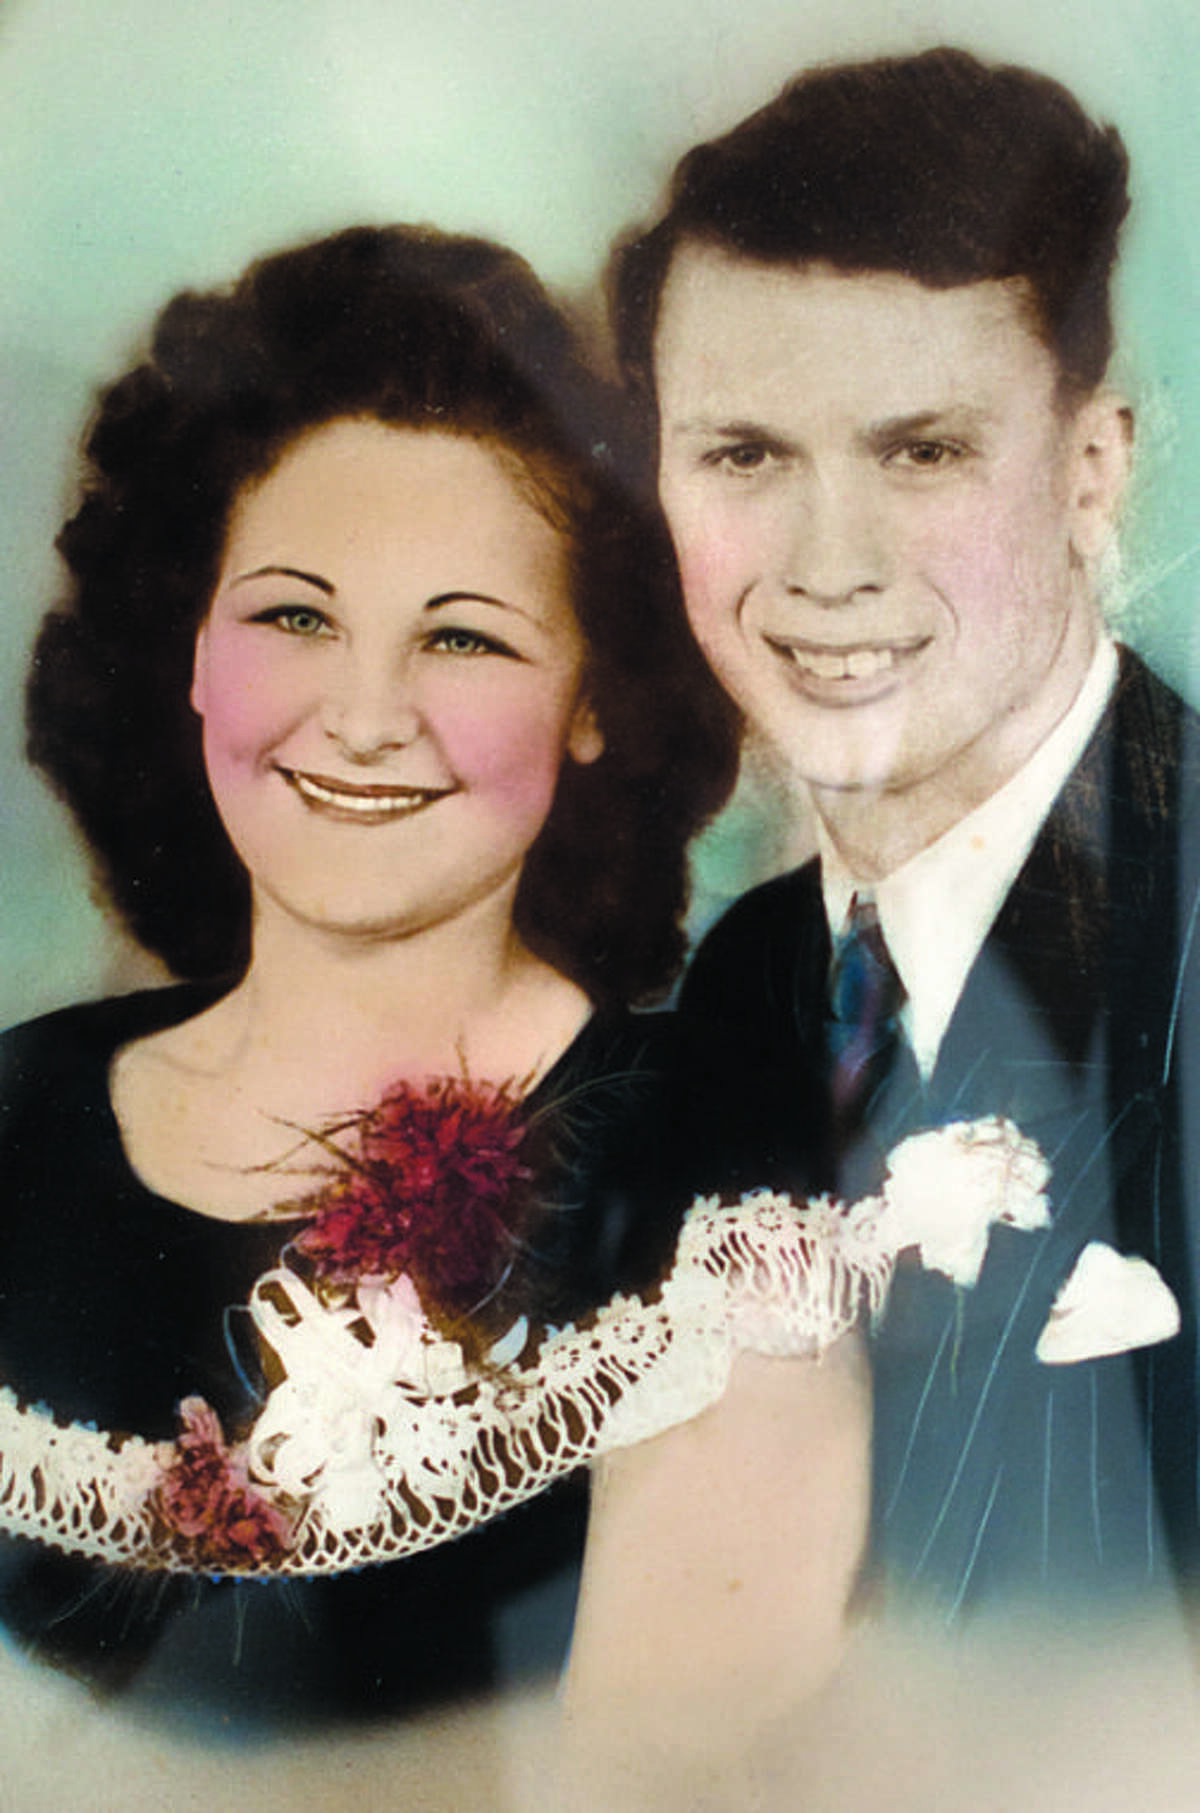 Clayton and Opal Wolfgang are shown here in their wedding photo from 1947. Courtesy photo